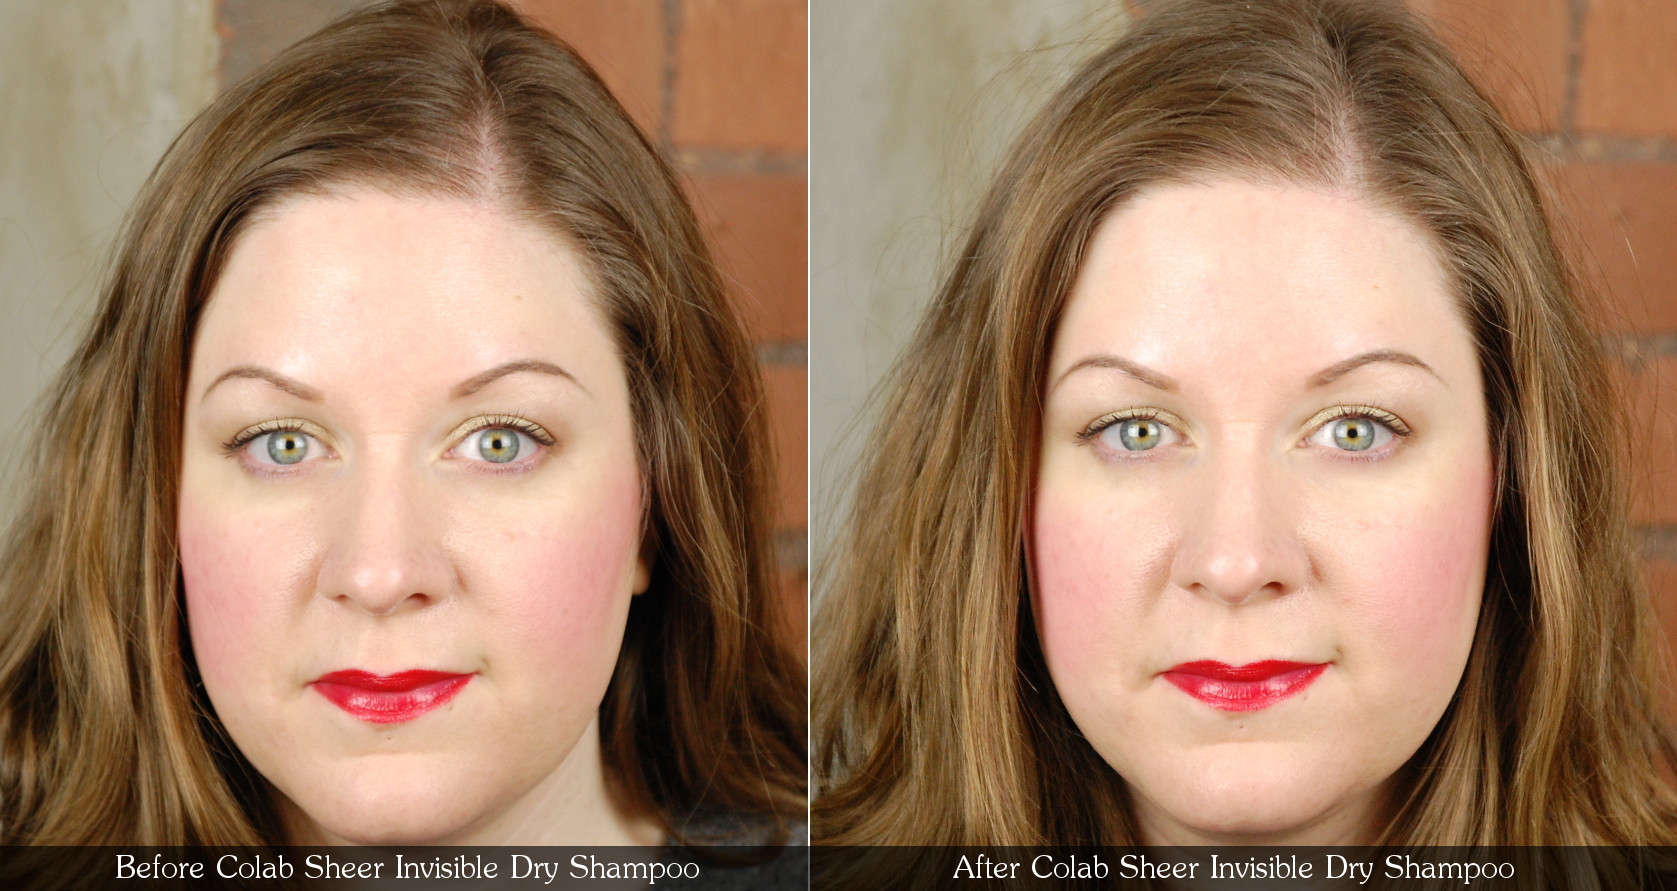 Colab Sheer Invisible Dry Shampoo Before After